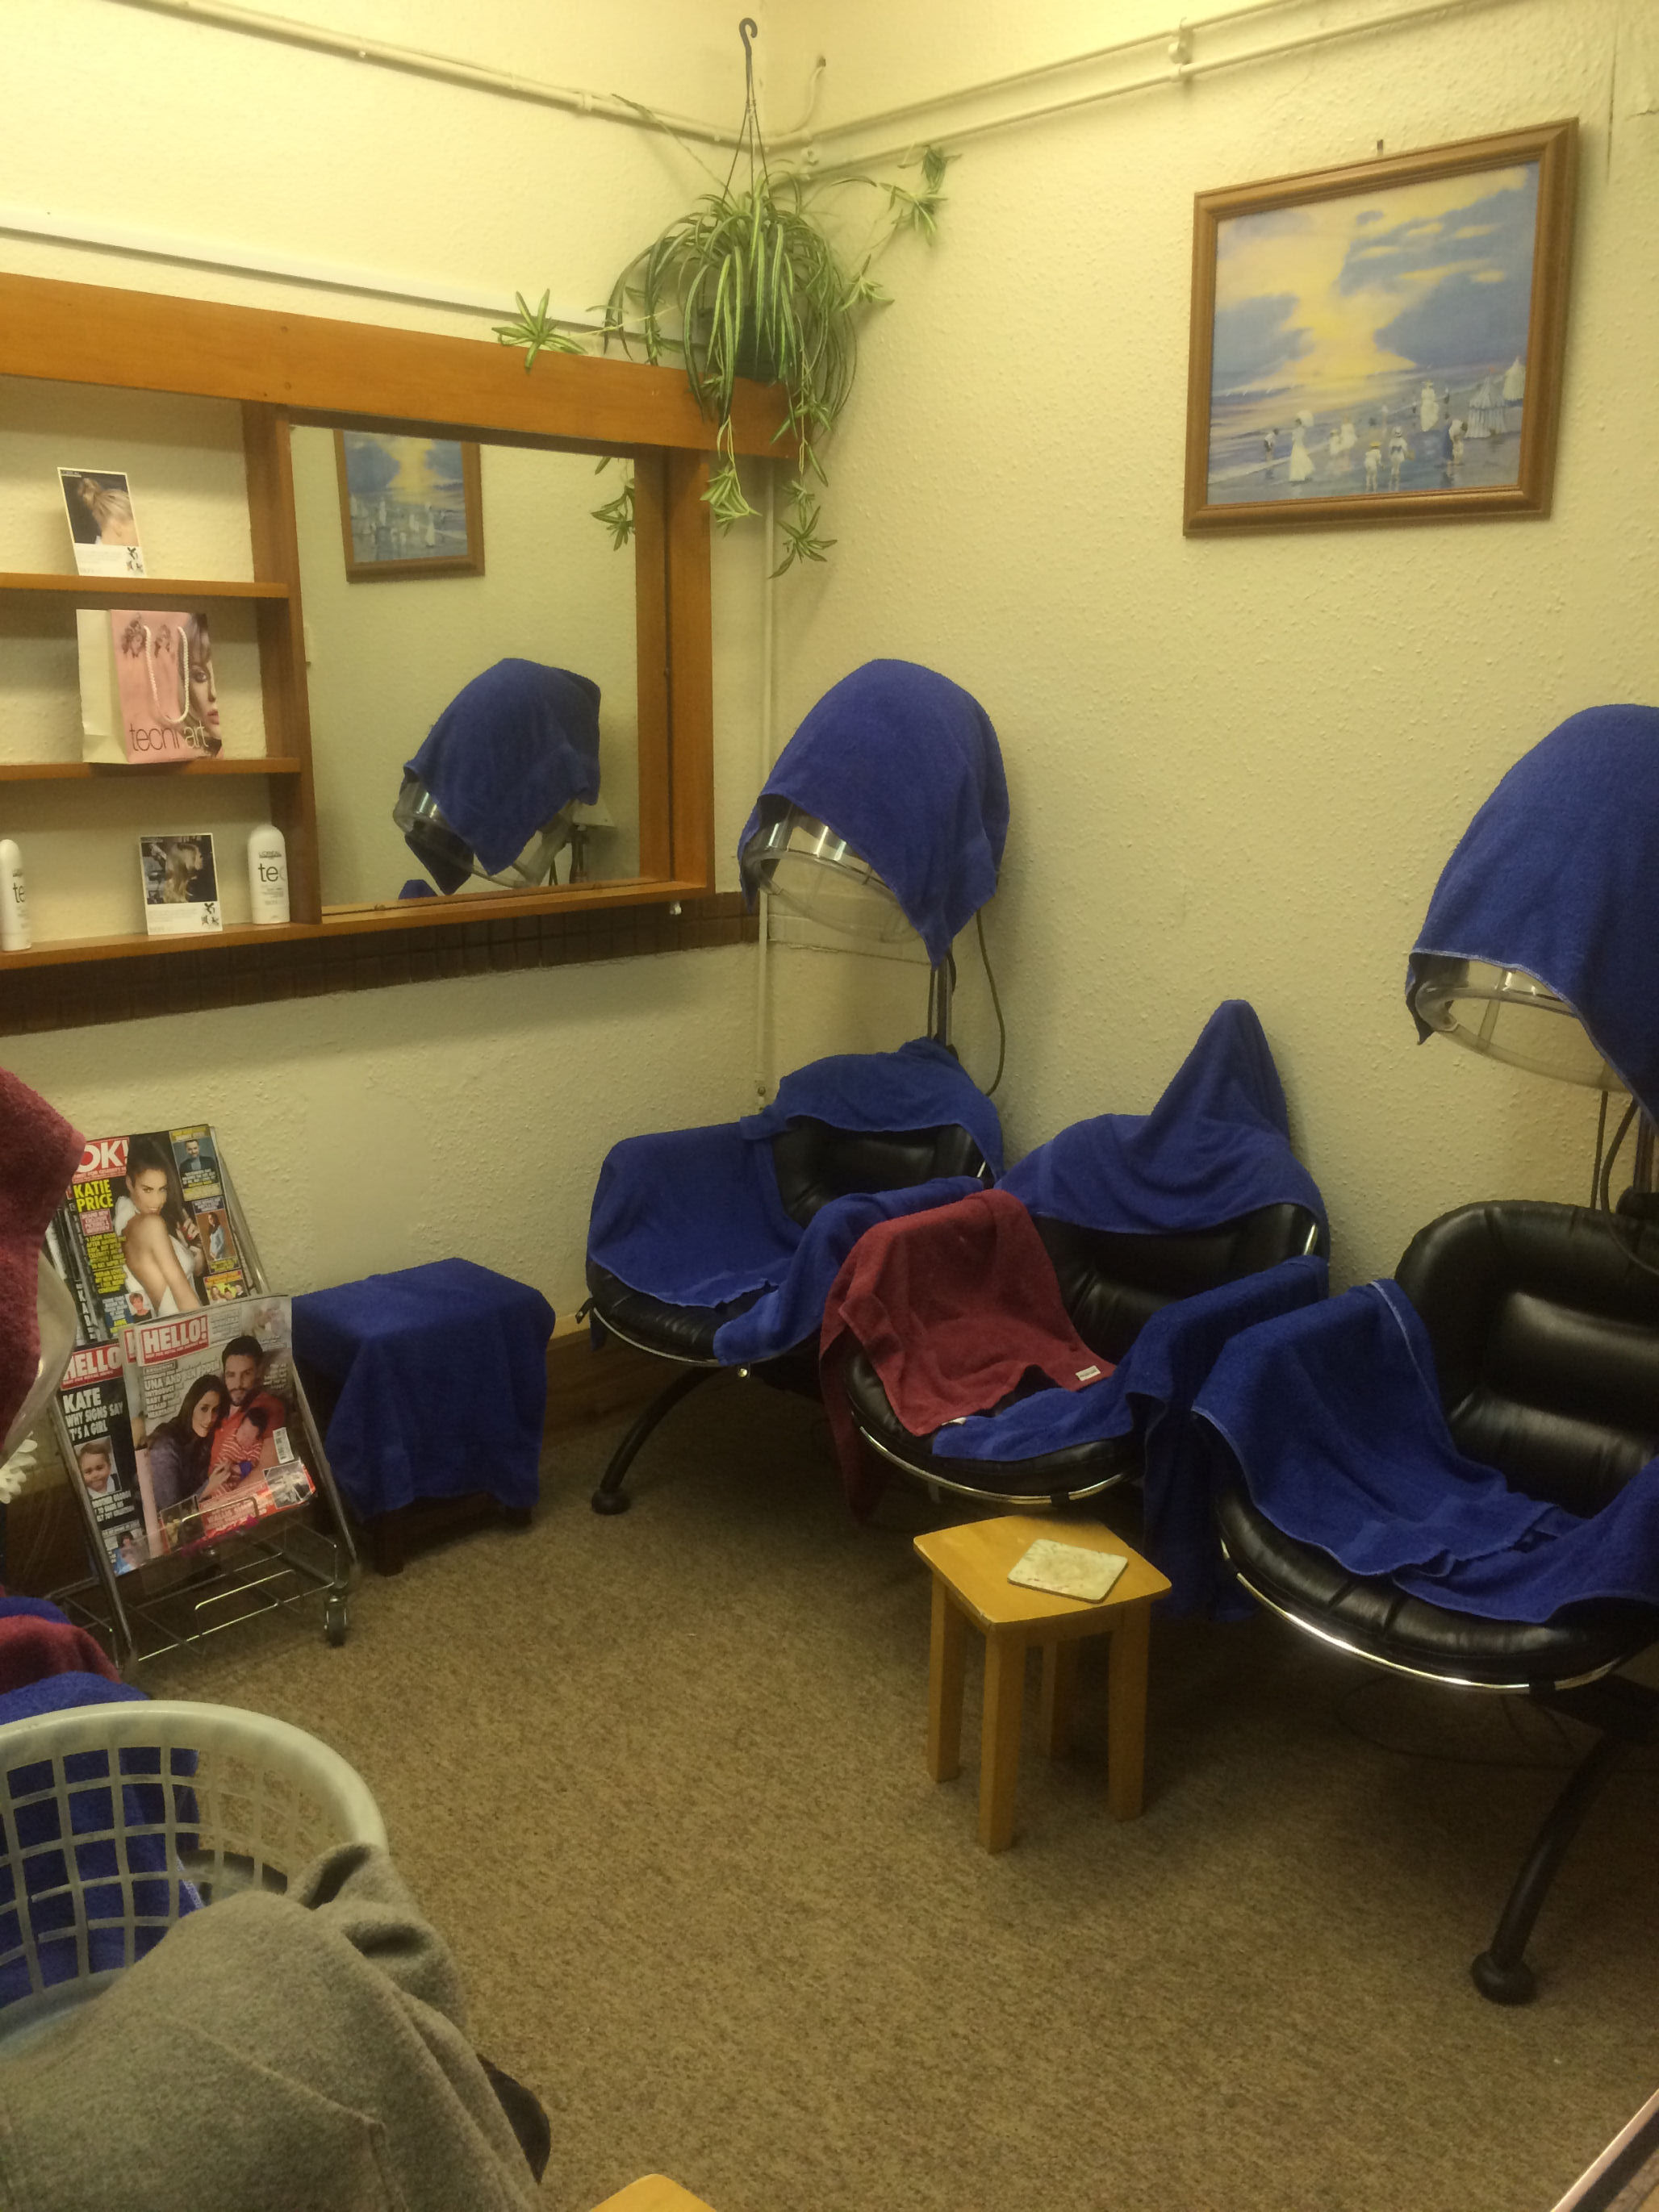 Staff run hair salon with accommodation in kent for sale for 101 beauty salon